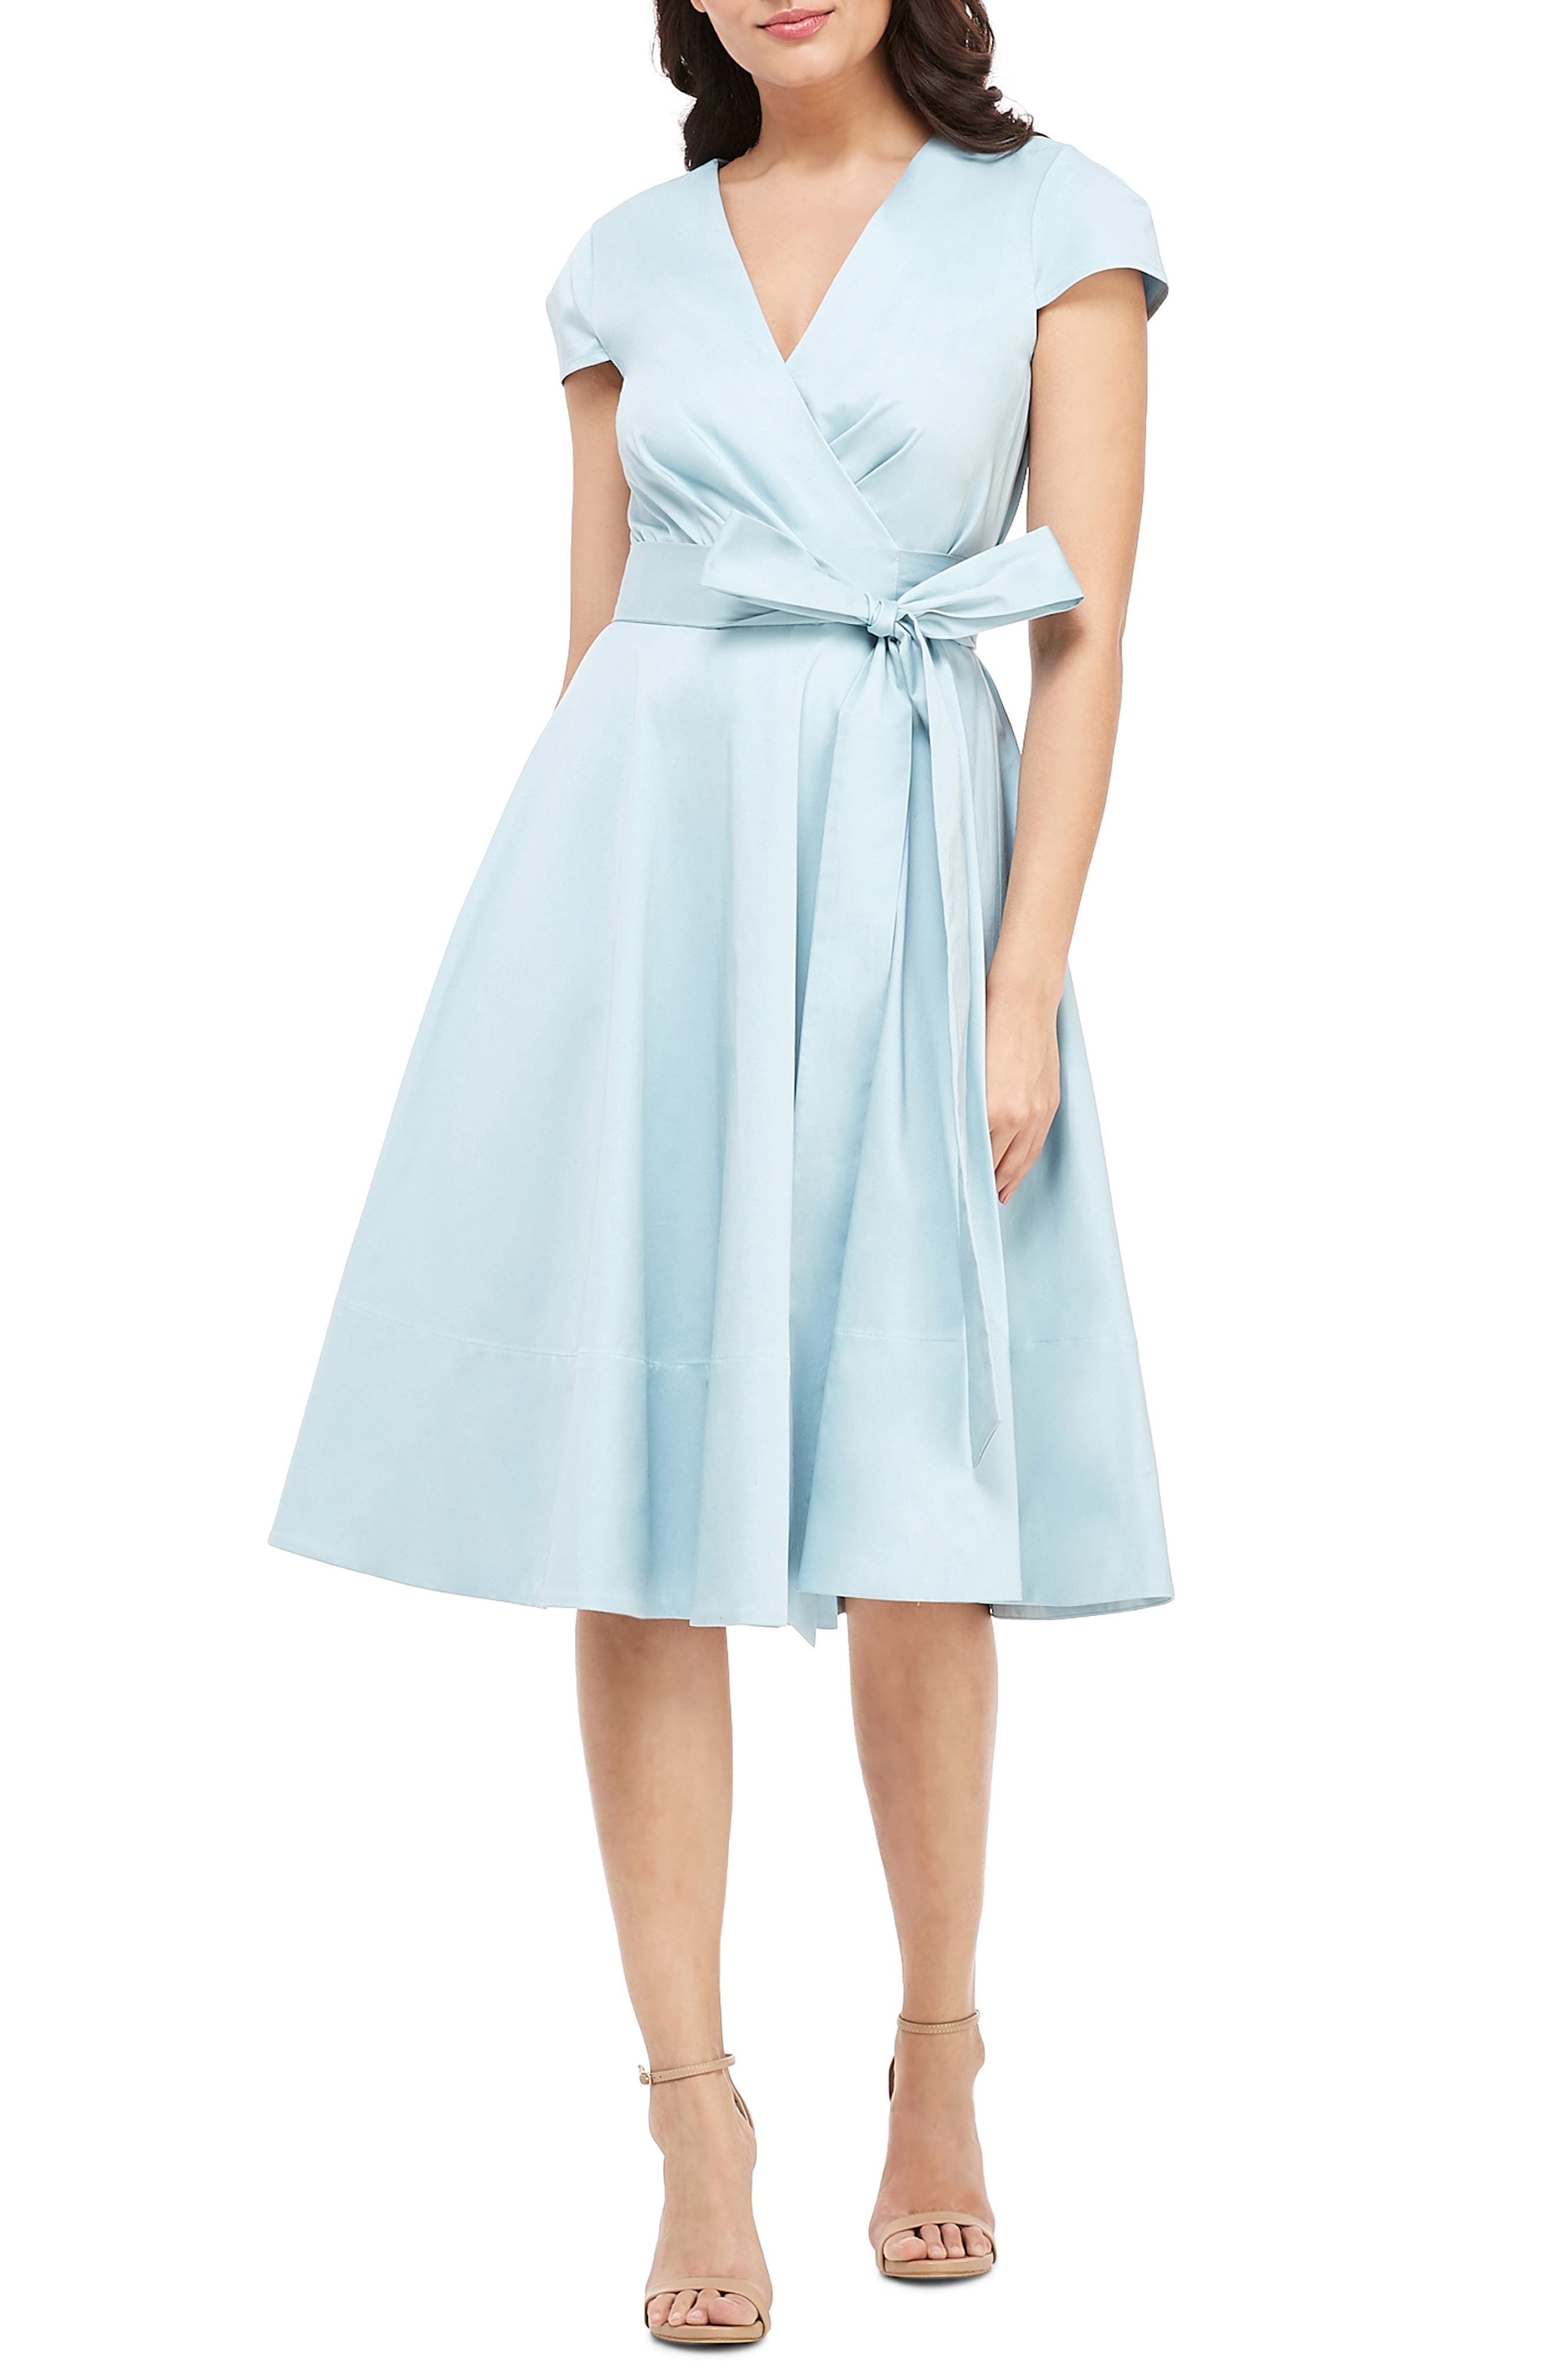 Gal Meets Glam Collection Addison Cotton Tie Waist Fit & Flare Wrap Dress, 8 (similar to 1) - Blue